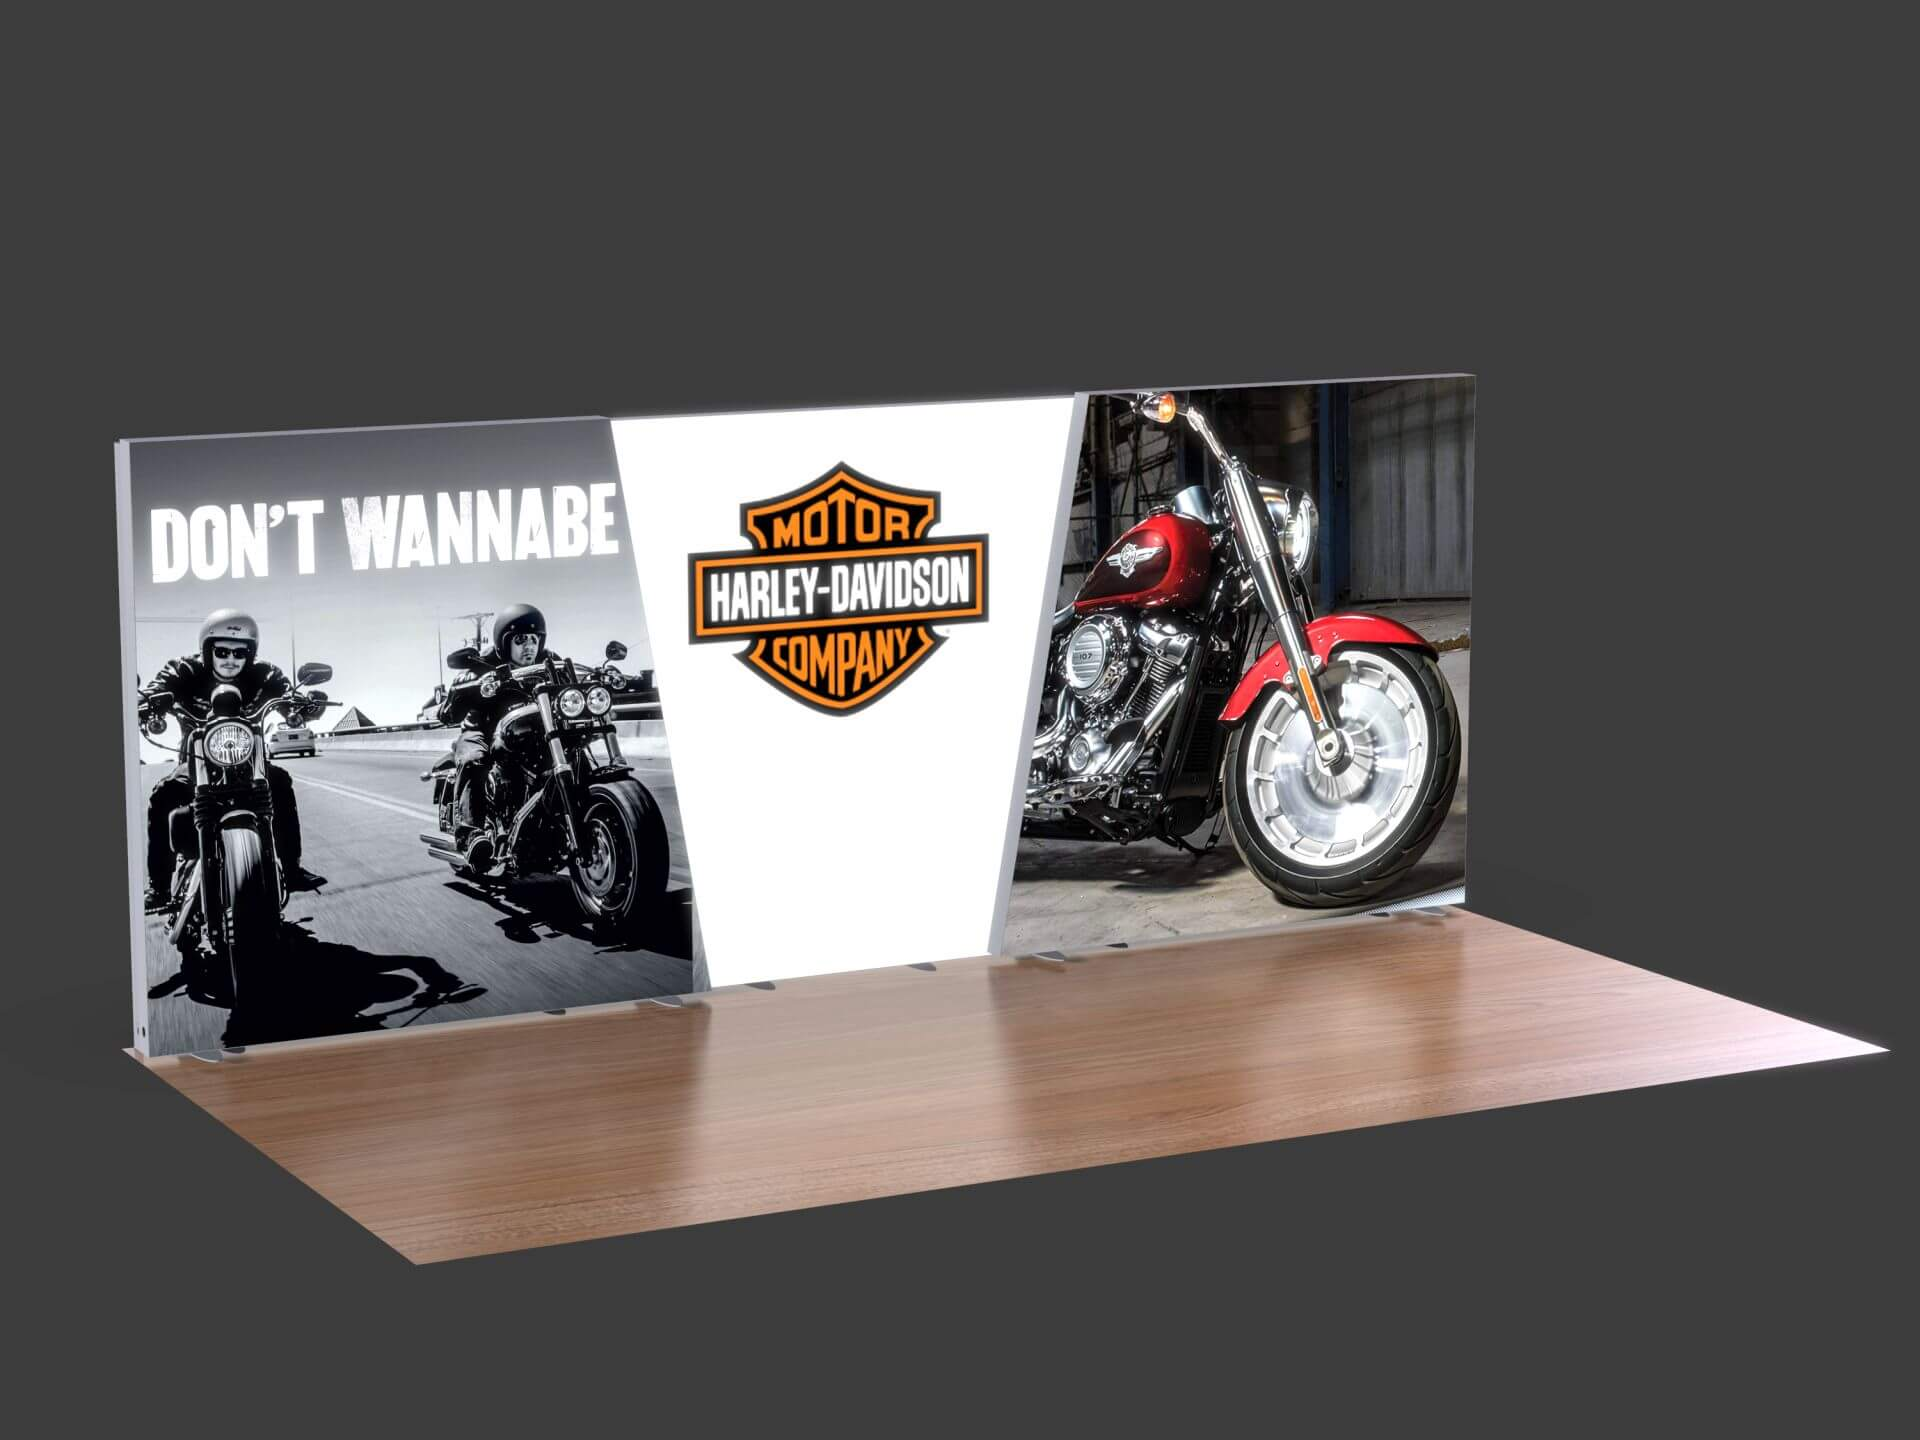 LumiWall Trapezoid Accent 20' x 8' LED Backlit Fabric Display LWT-04